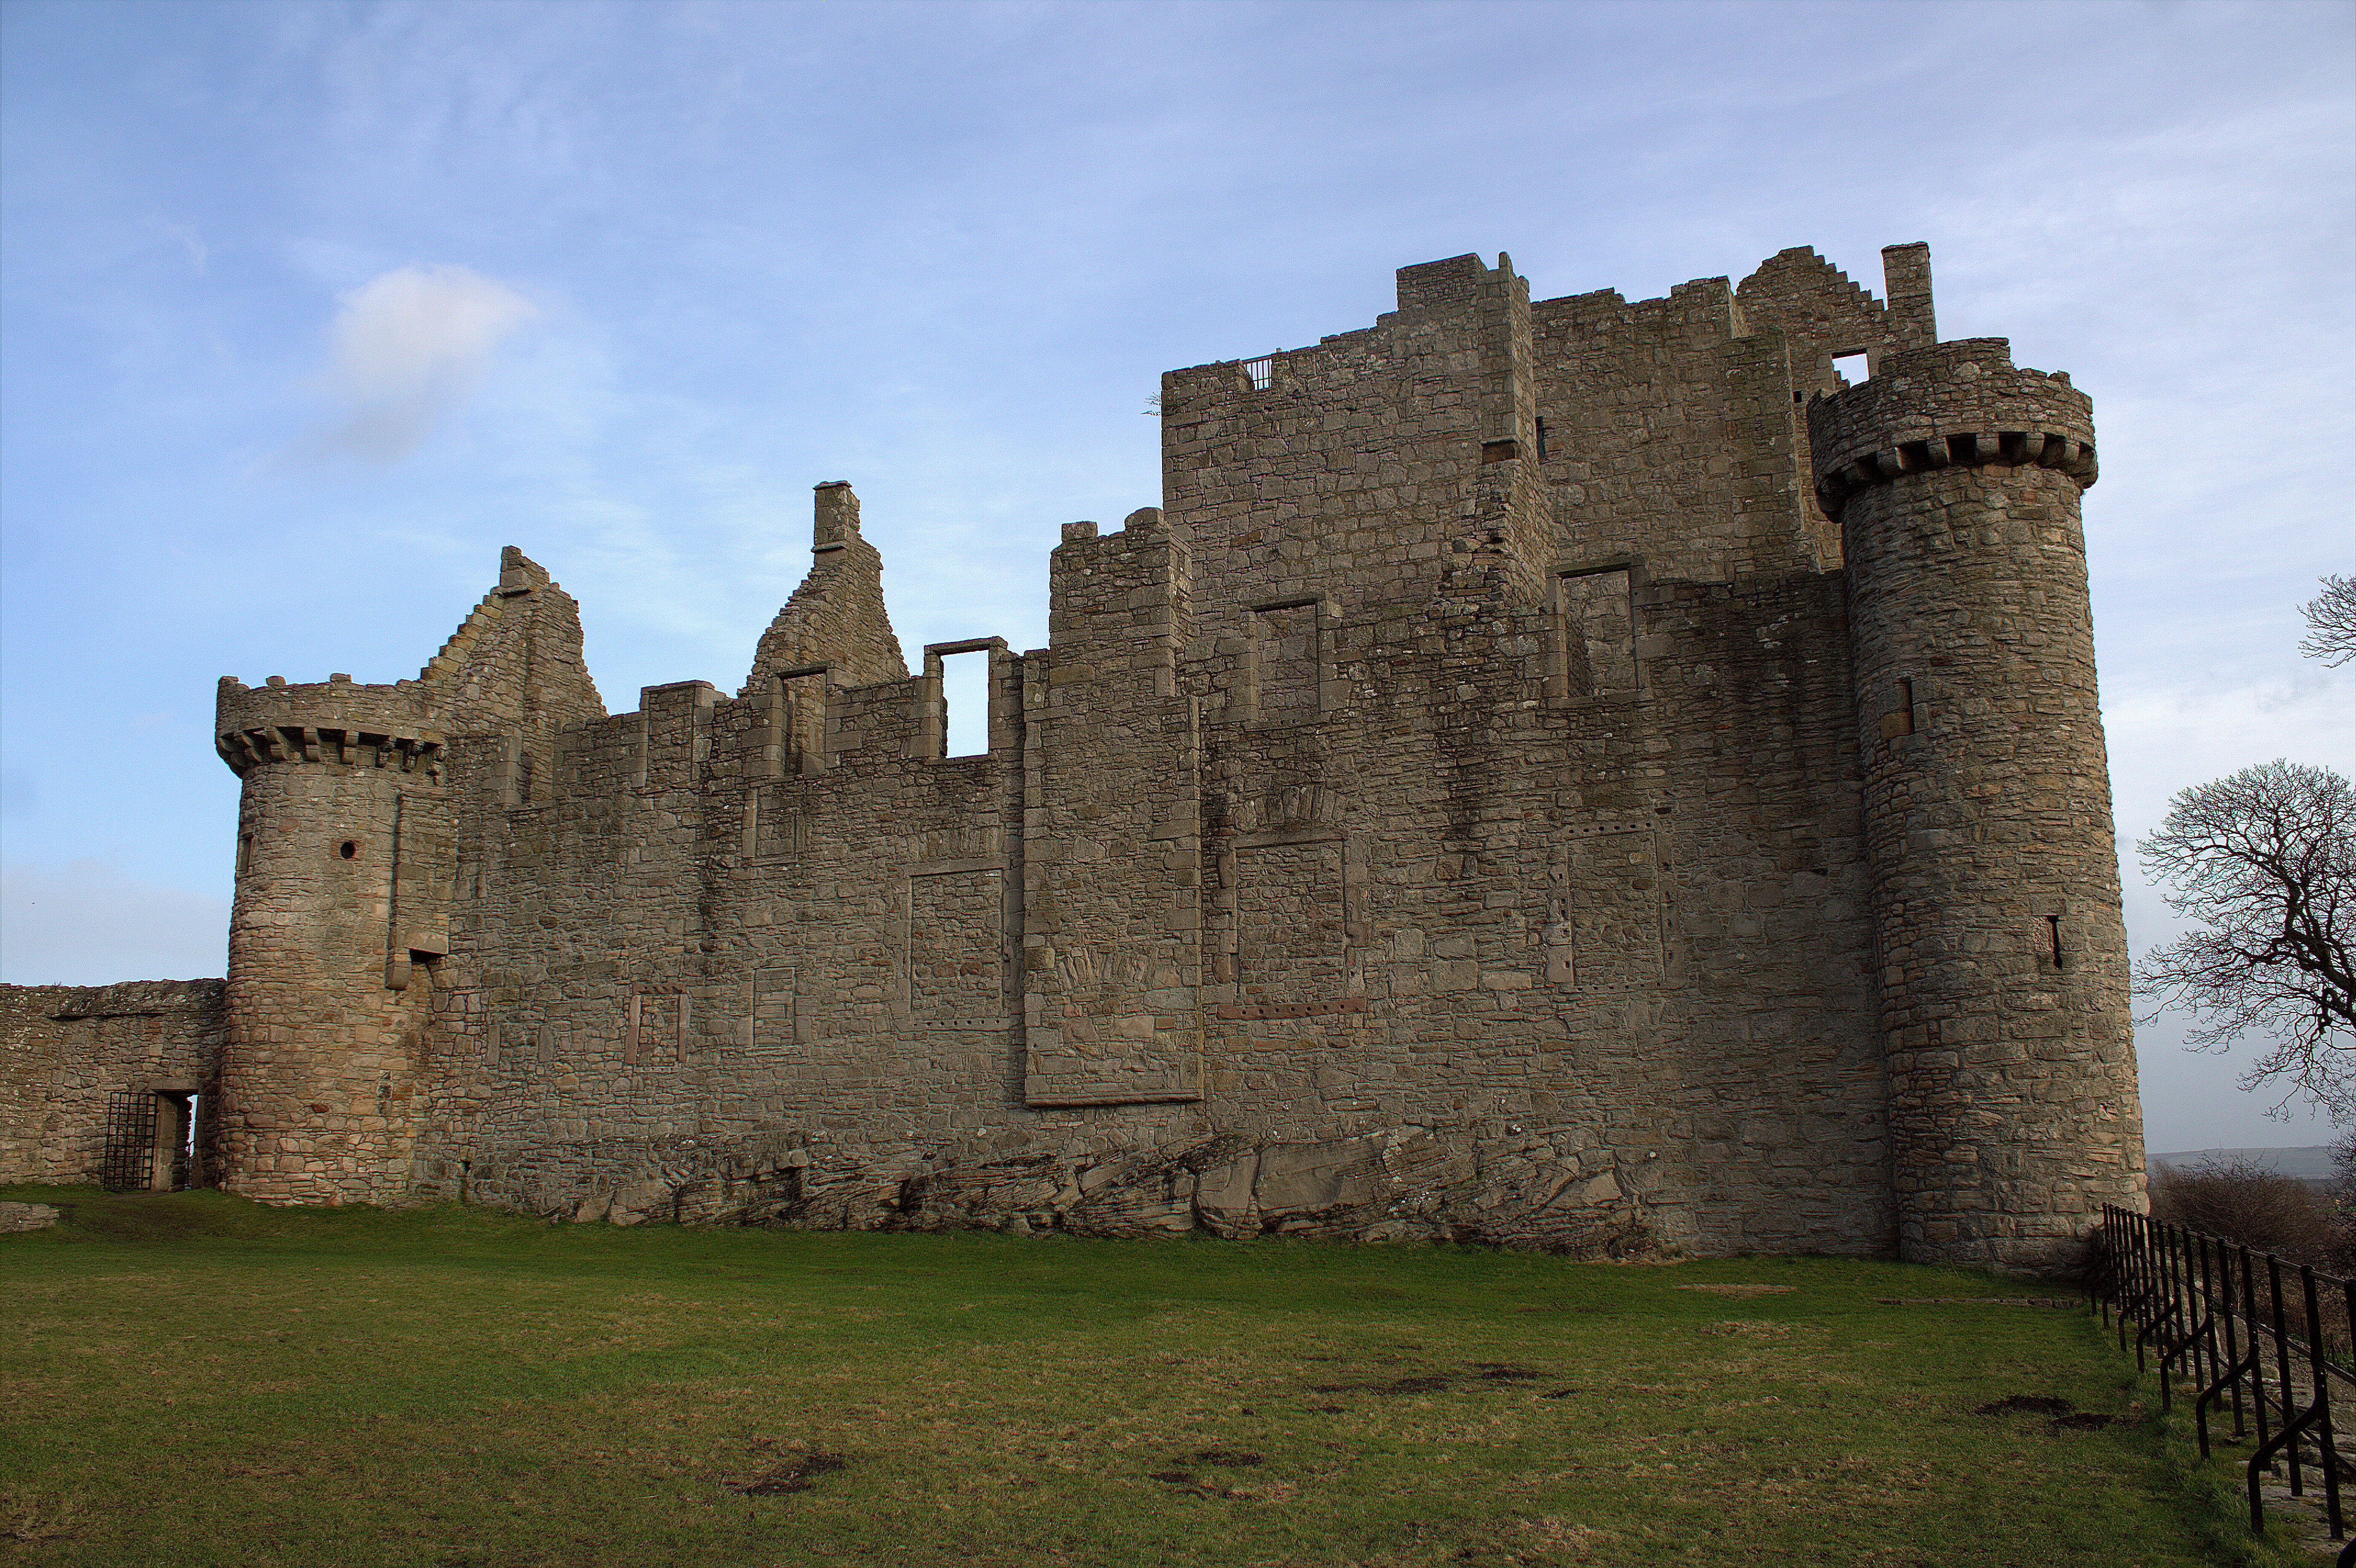 49. Craigmillar Castle, Edinburgh, Scotland